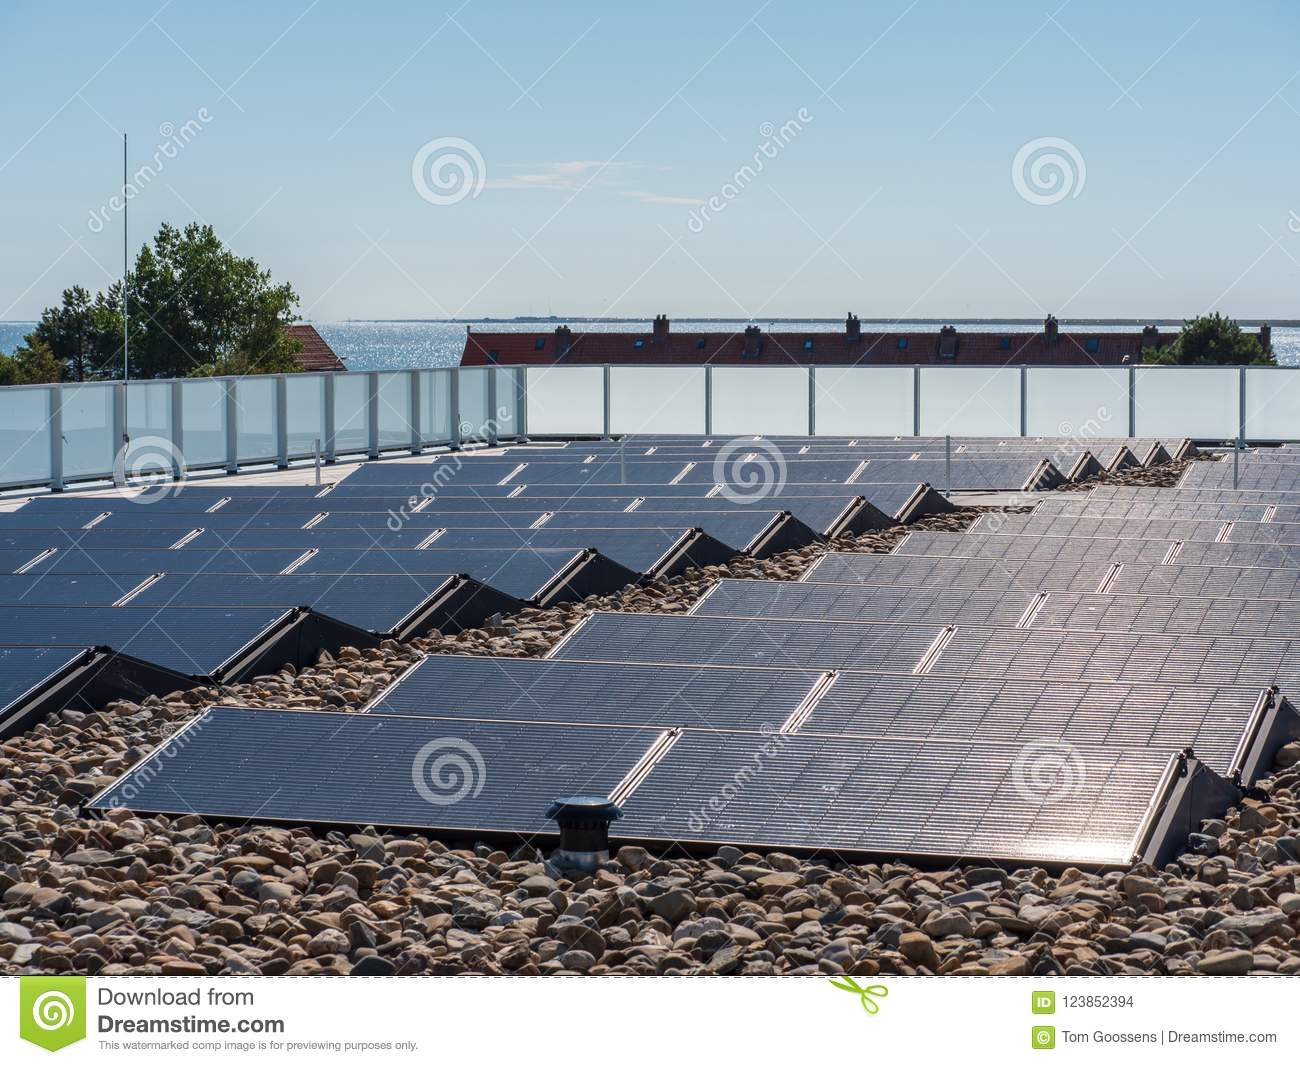 Solar panels on a roof for the production of environmentally fri